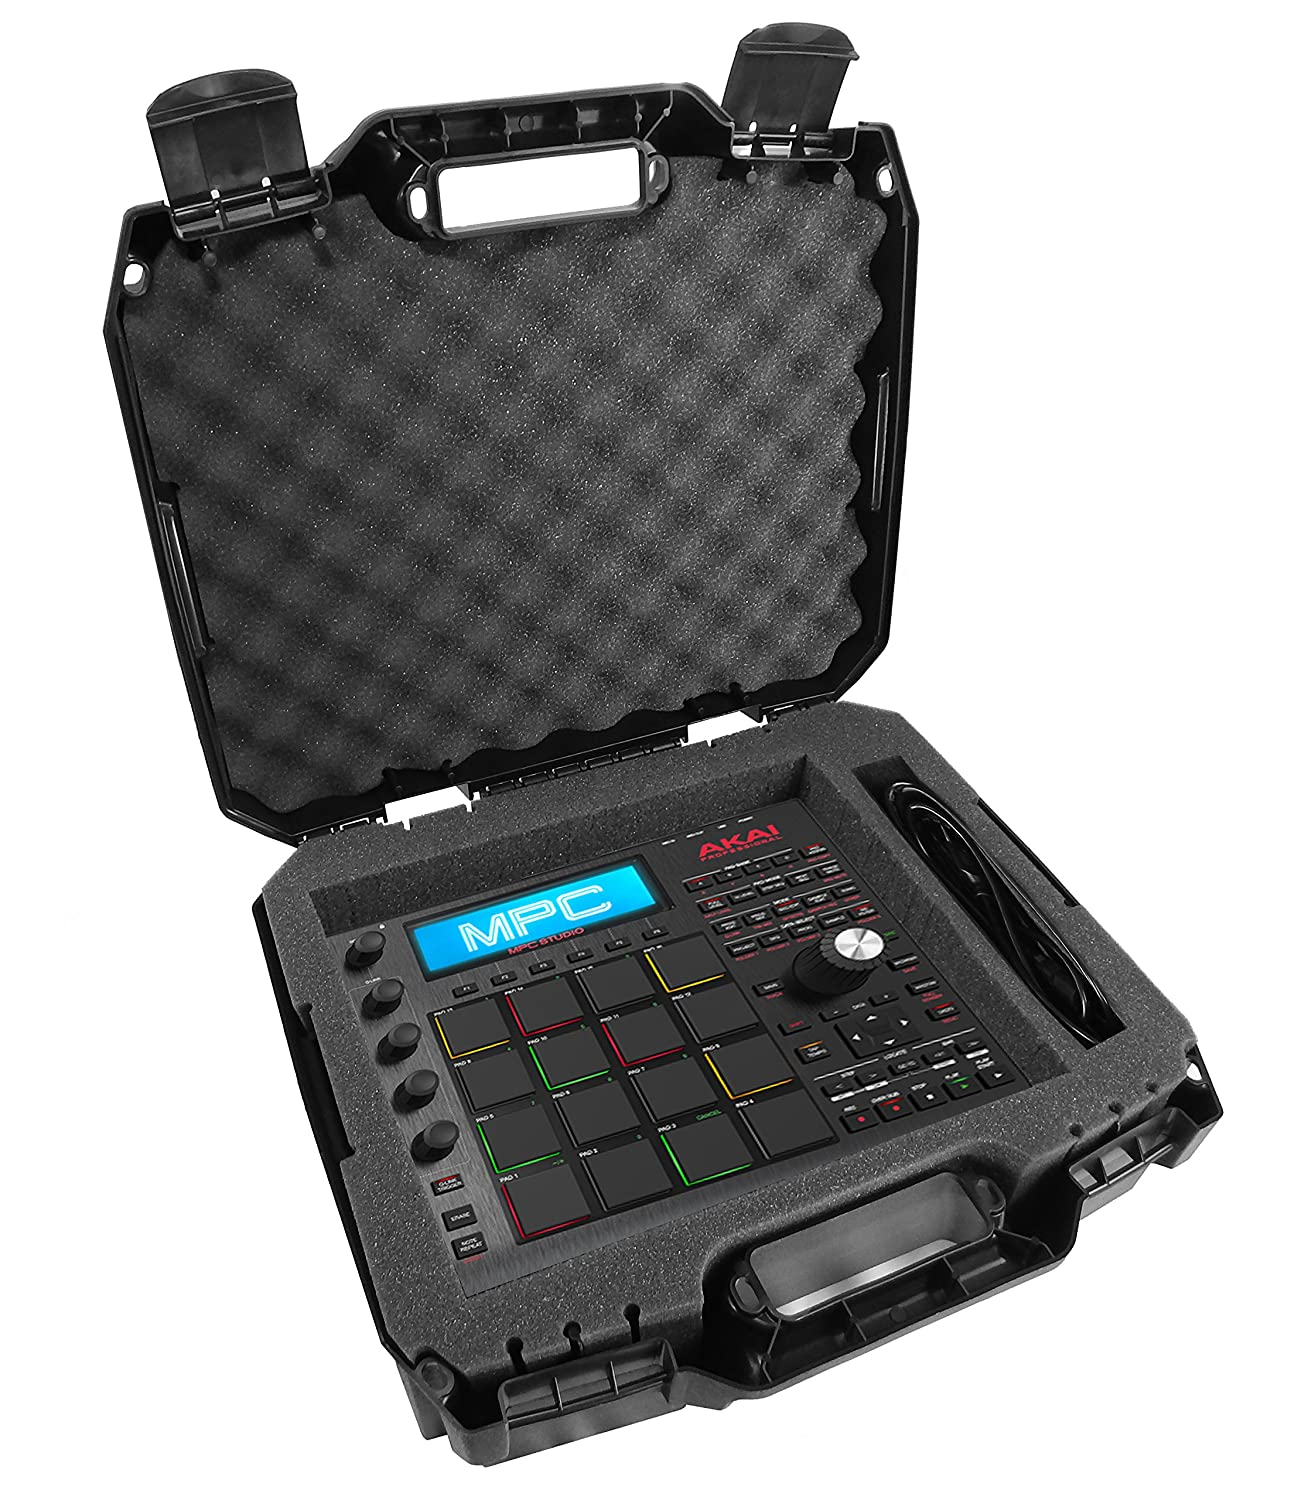 ArmorXL Carrying Case 17 for KeyPad Drum Controllers - Fits Akai Professional MPD218, MPD226, APC Mini, MPX16, MPD18, XR20, MPC Studio Black, MPC Element, MIDImix, Tom Cat, Rhythm Wolf CASEMATIX TAC17-DRM-AKI